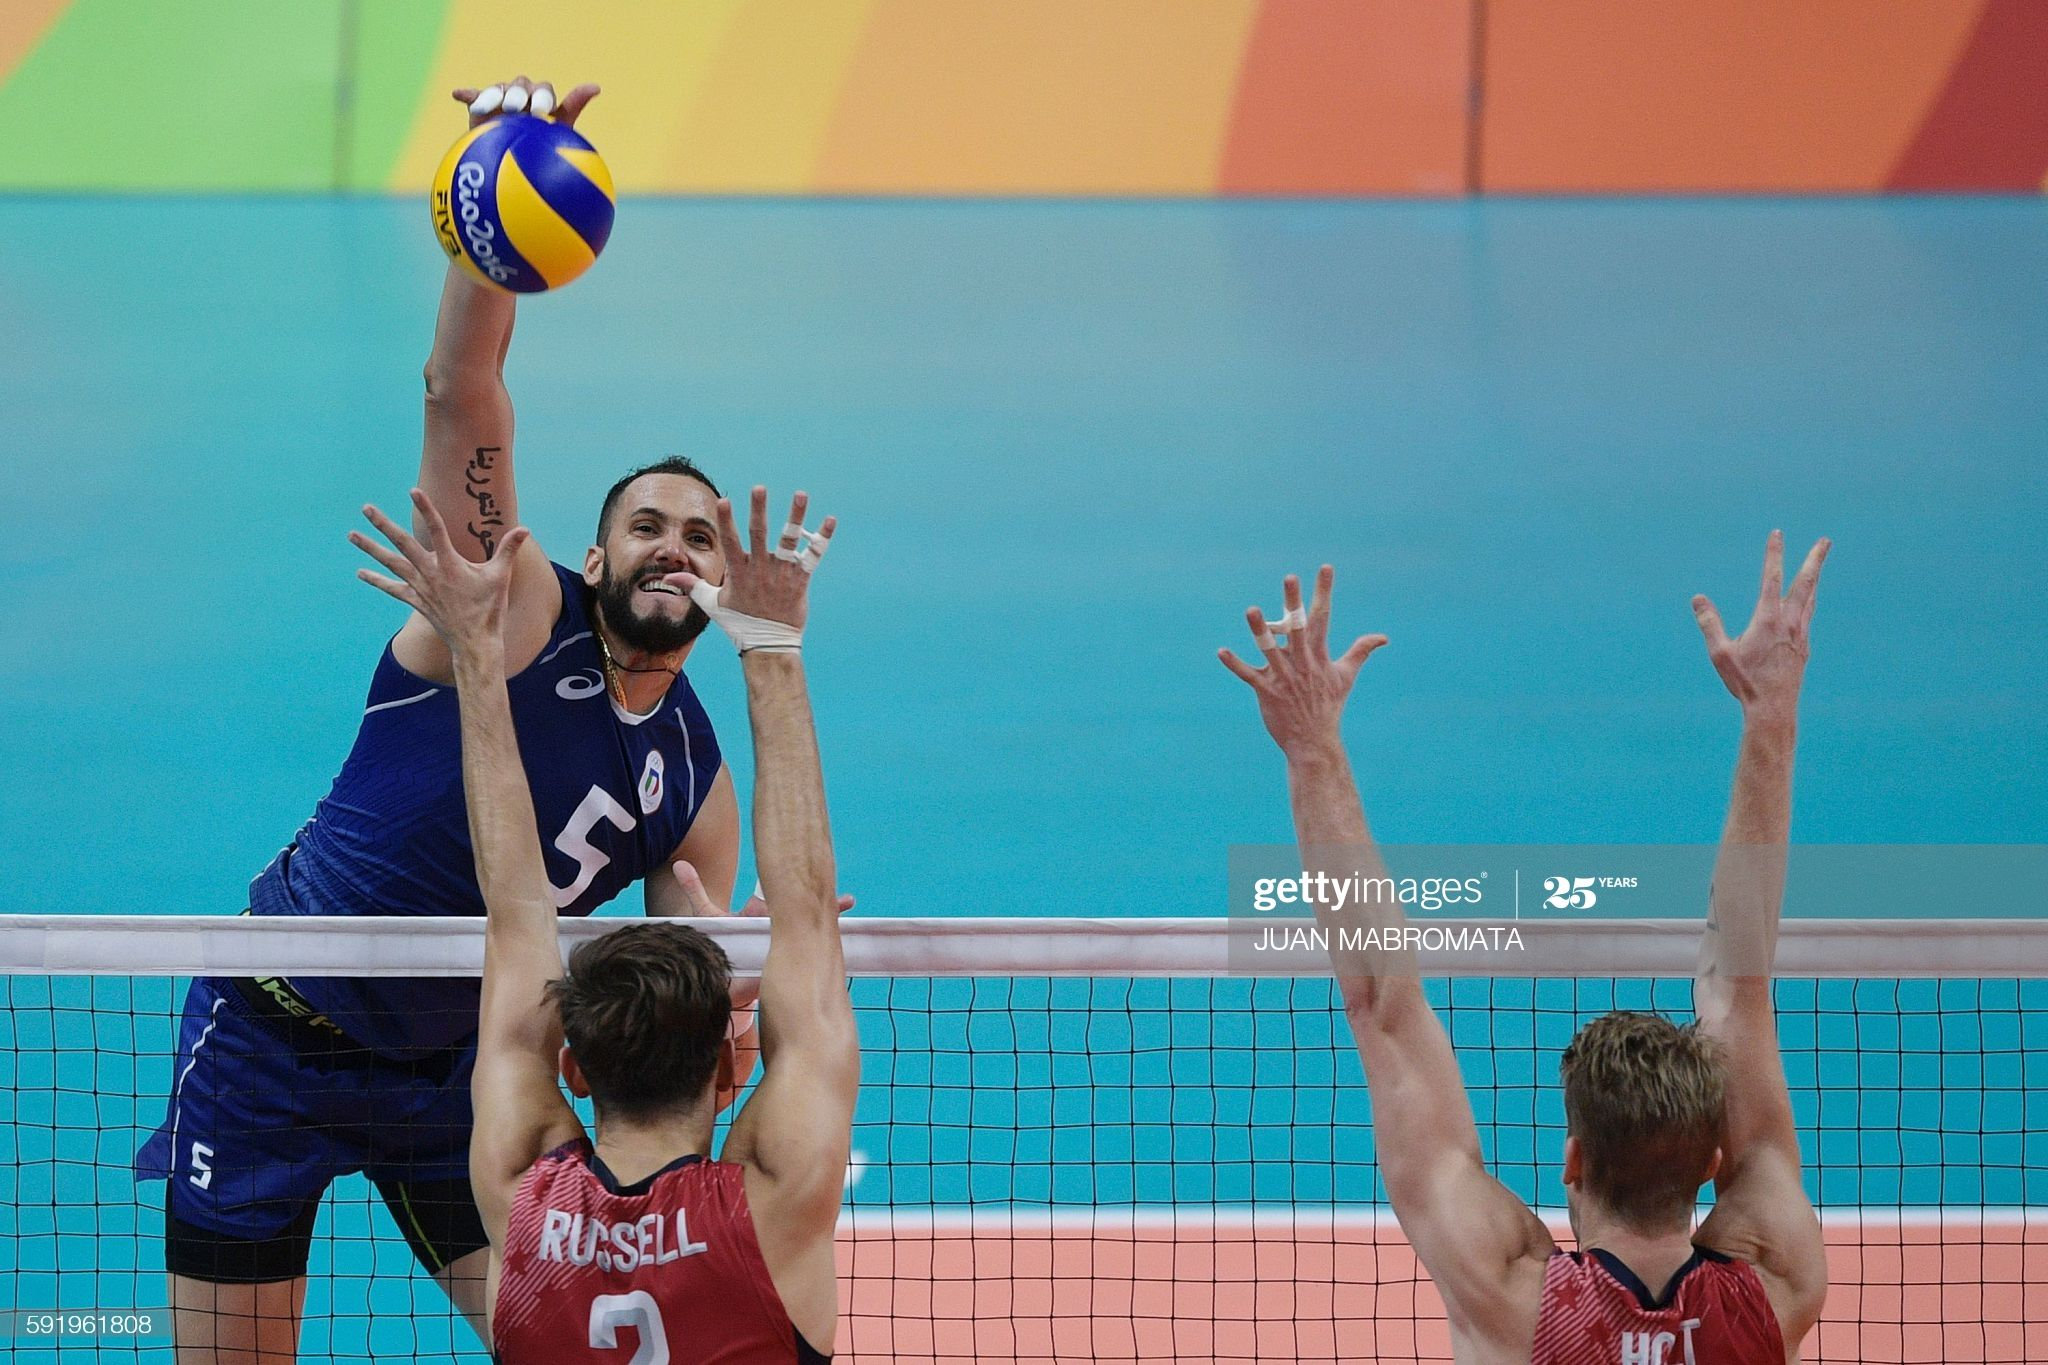 Italy S Osmany Juantorena Spikes The Ball During The Men S Semi Final In 2020 Semi Final 2016 Olympic Games Rio Olympics 2016